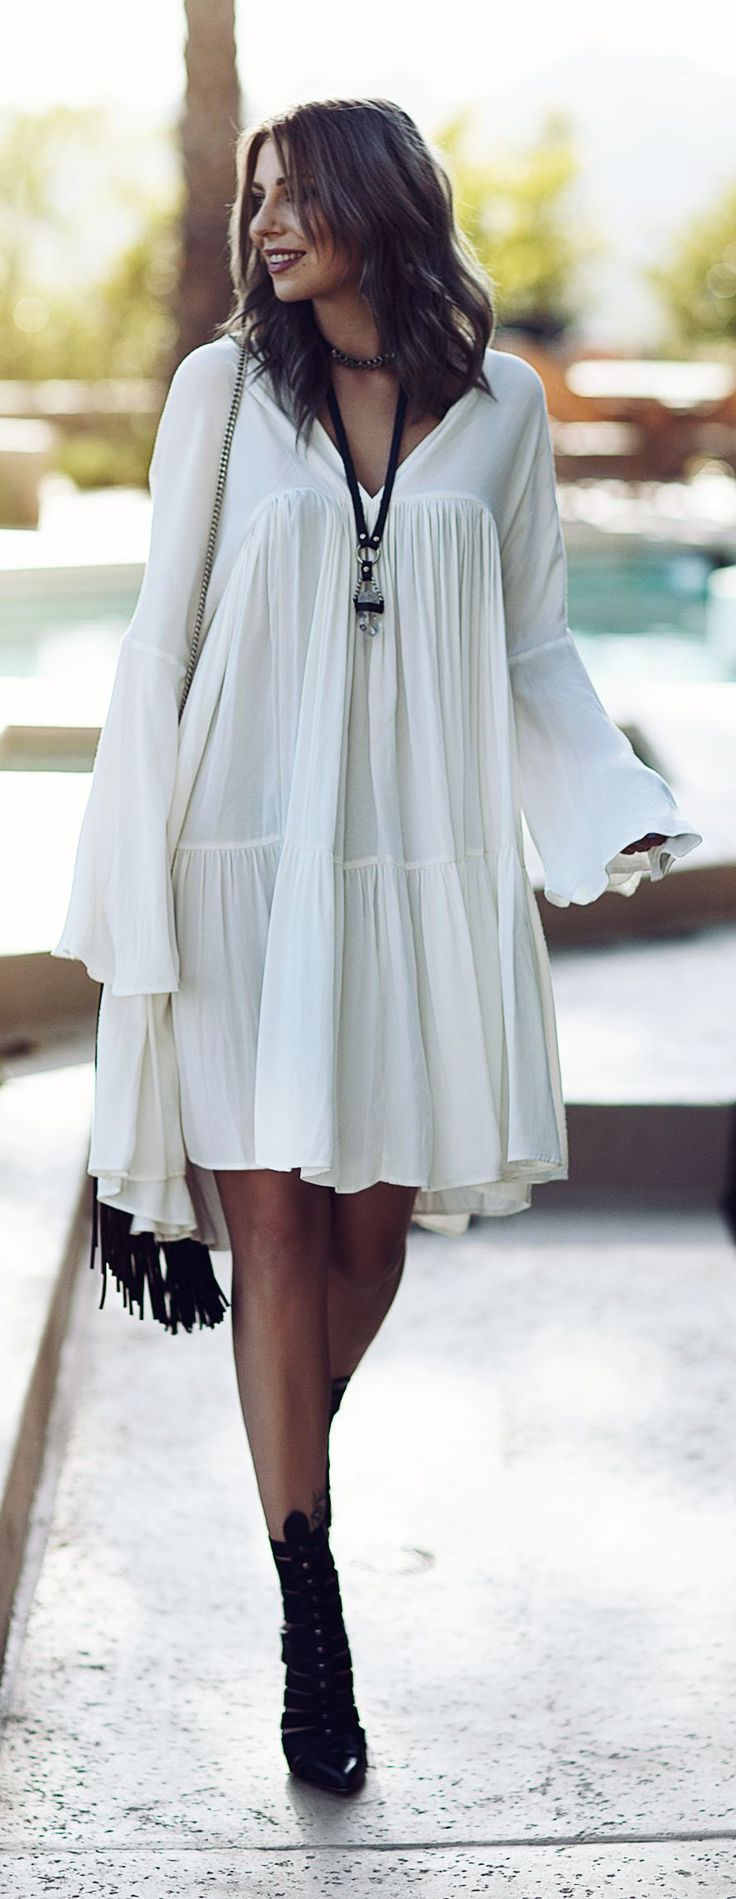 White Hippie Boho Inspiration Dress. For more followwww.pinterest.com/ninayayand stay positively #pinspired #pinspire @ninayay